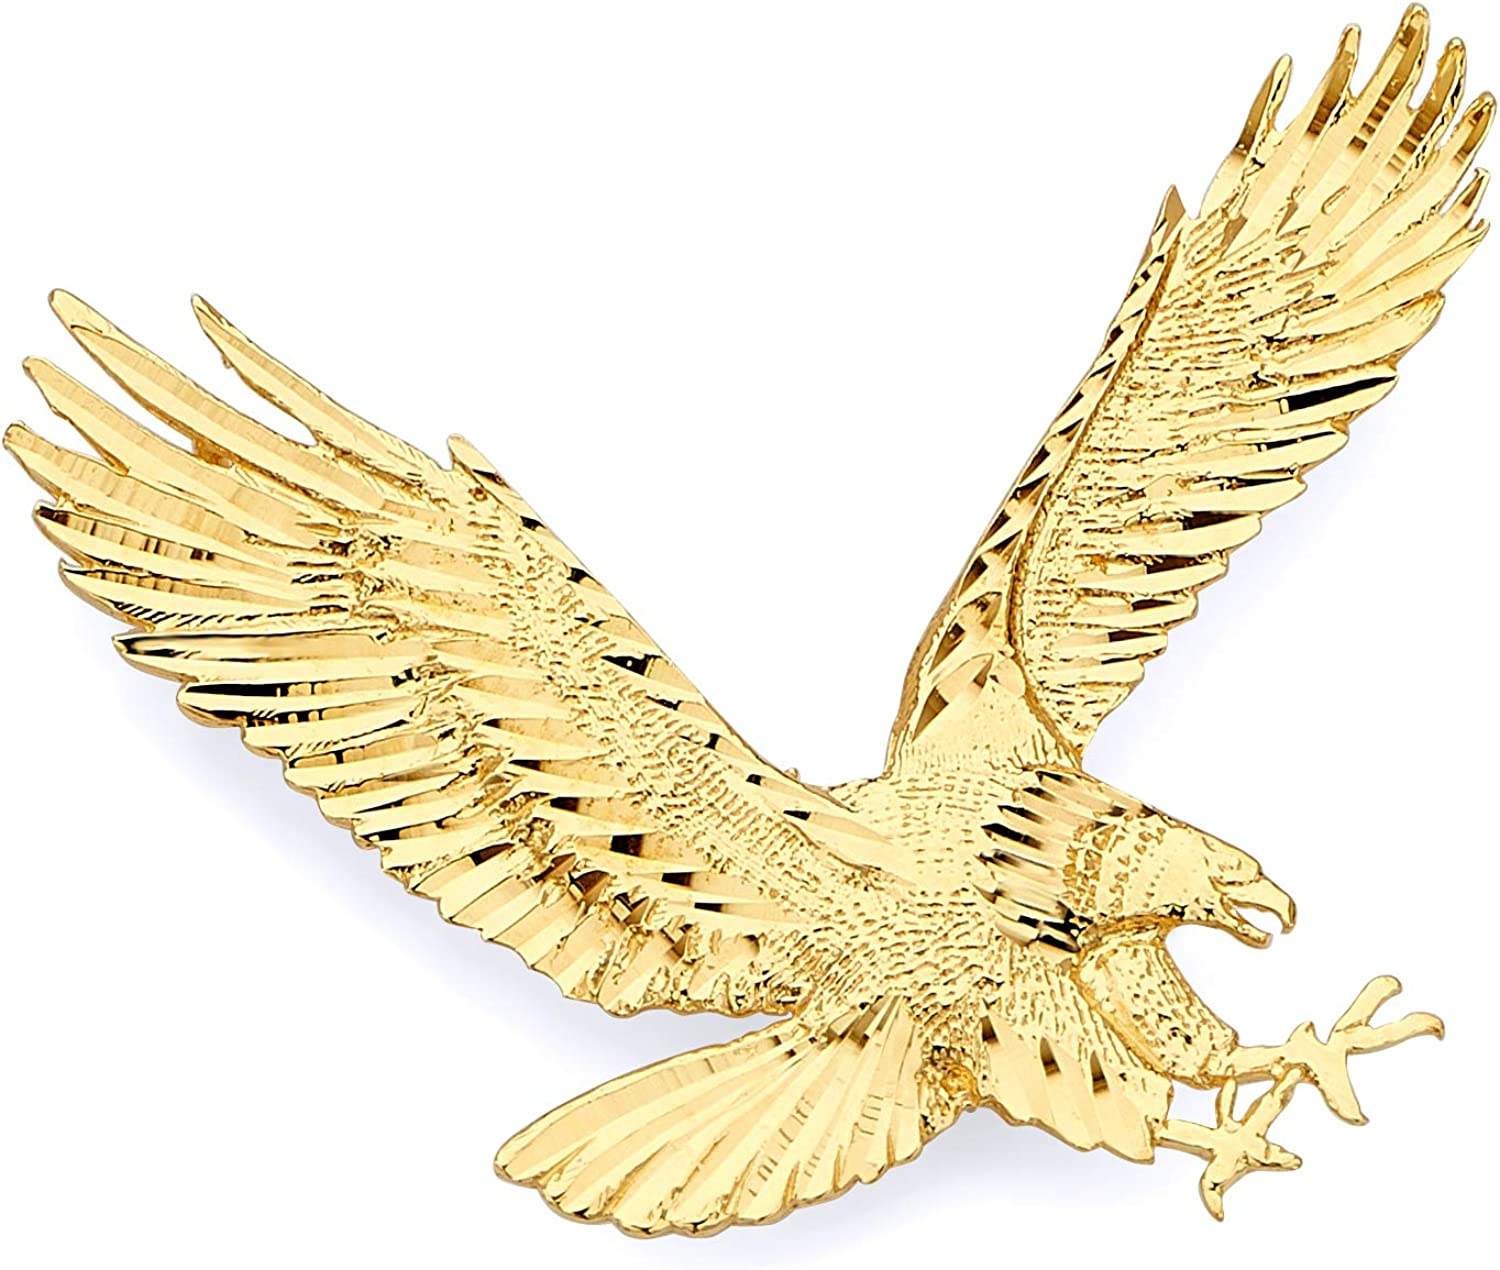 14k Yellow Gold Pendant for Pendant Necklace 14k Gold Eagle Charm for Charm Necklace Eagle Necklace Animal Jewelry Gold Birthday Gift